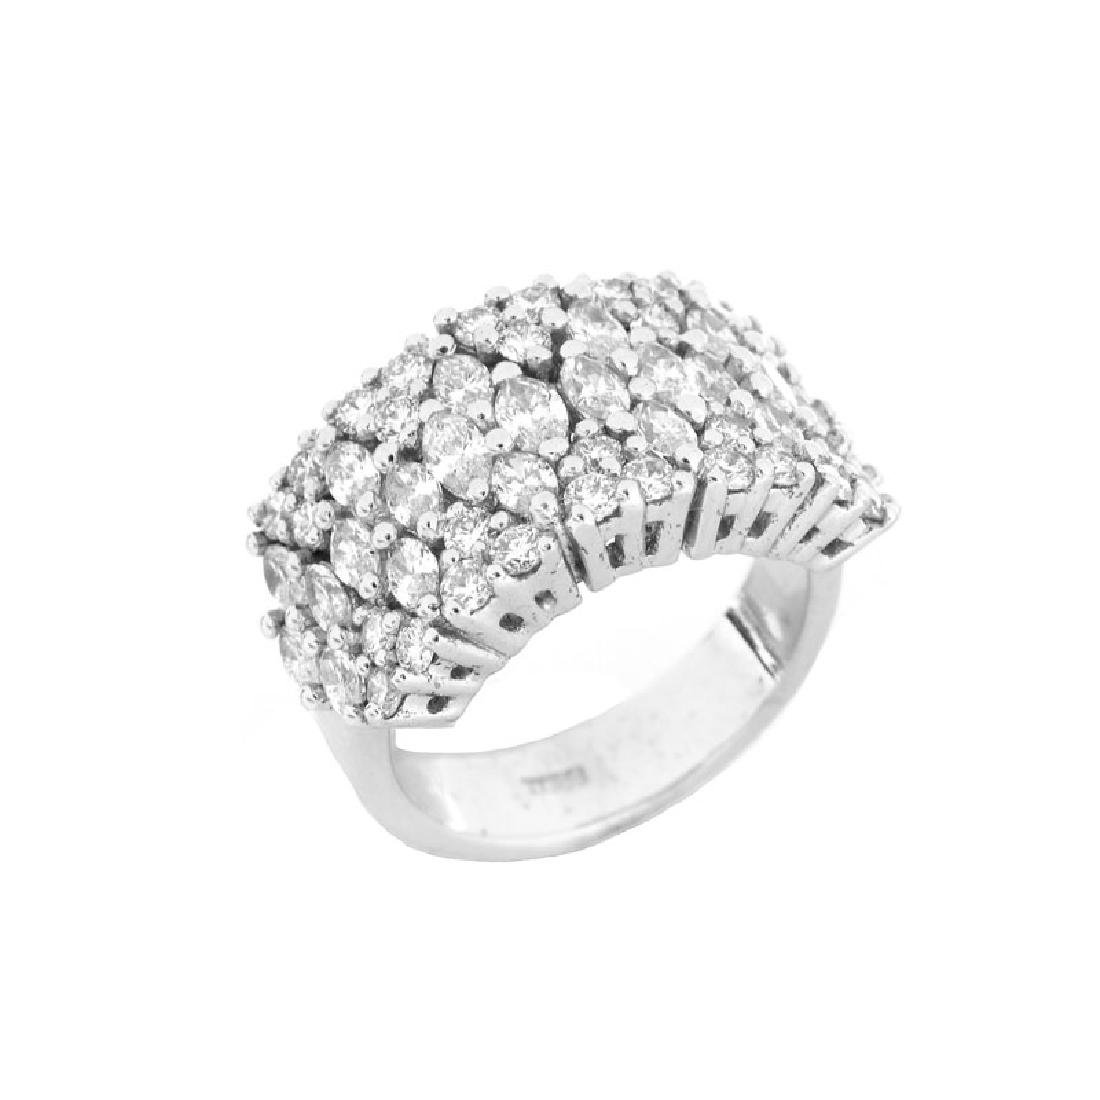 Approx. 2.35 Carat TW Marquise and Round Brilliant Cut